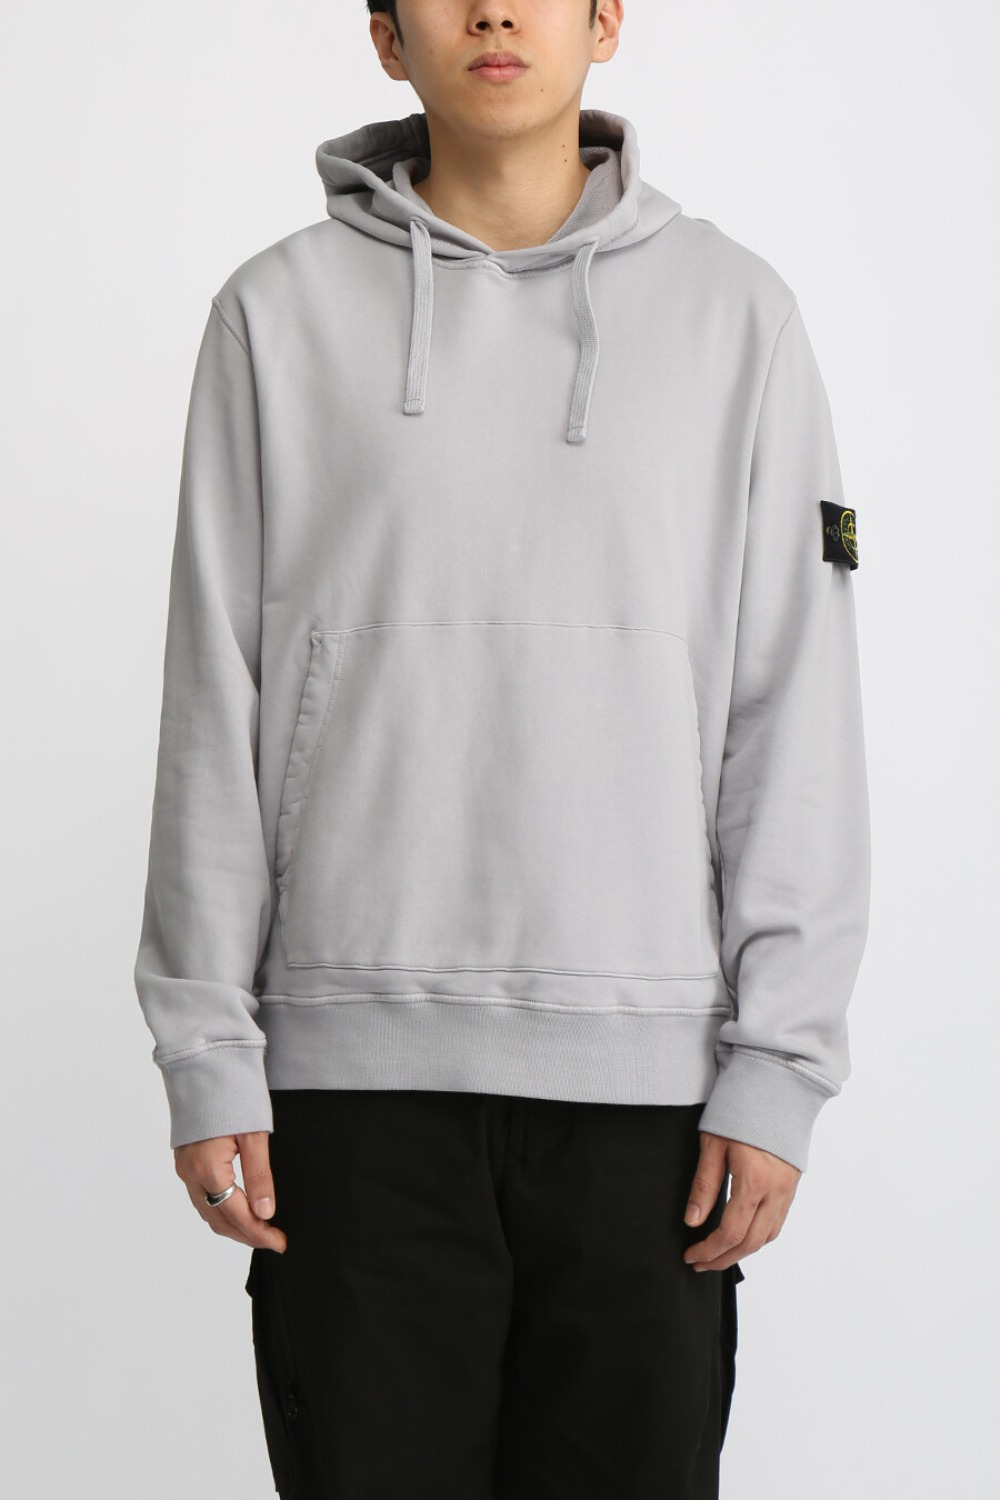 COTTON FLEECE GARMENT DYED HOODED SWEAT SHIRT GREY